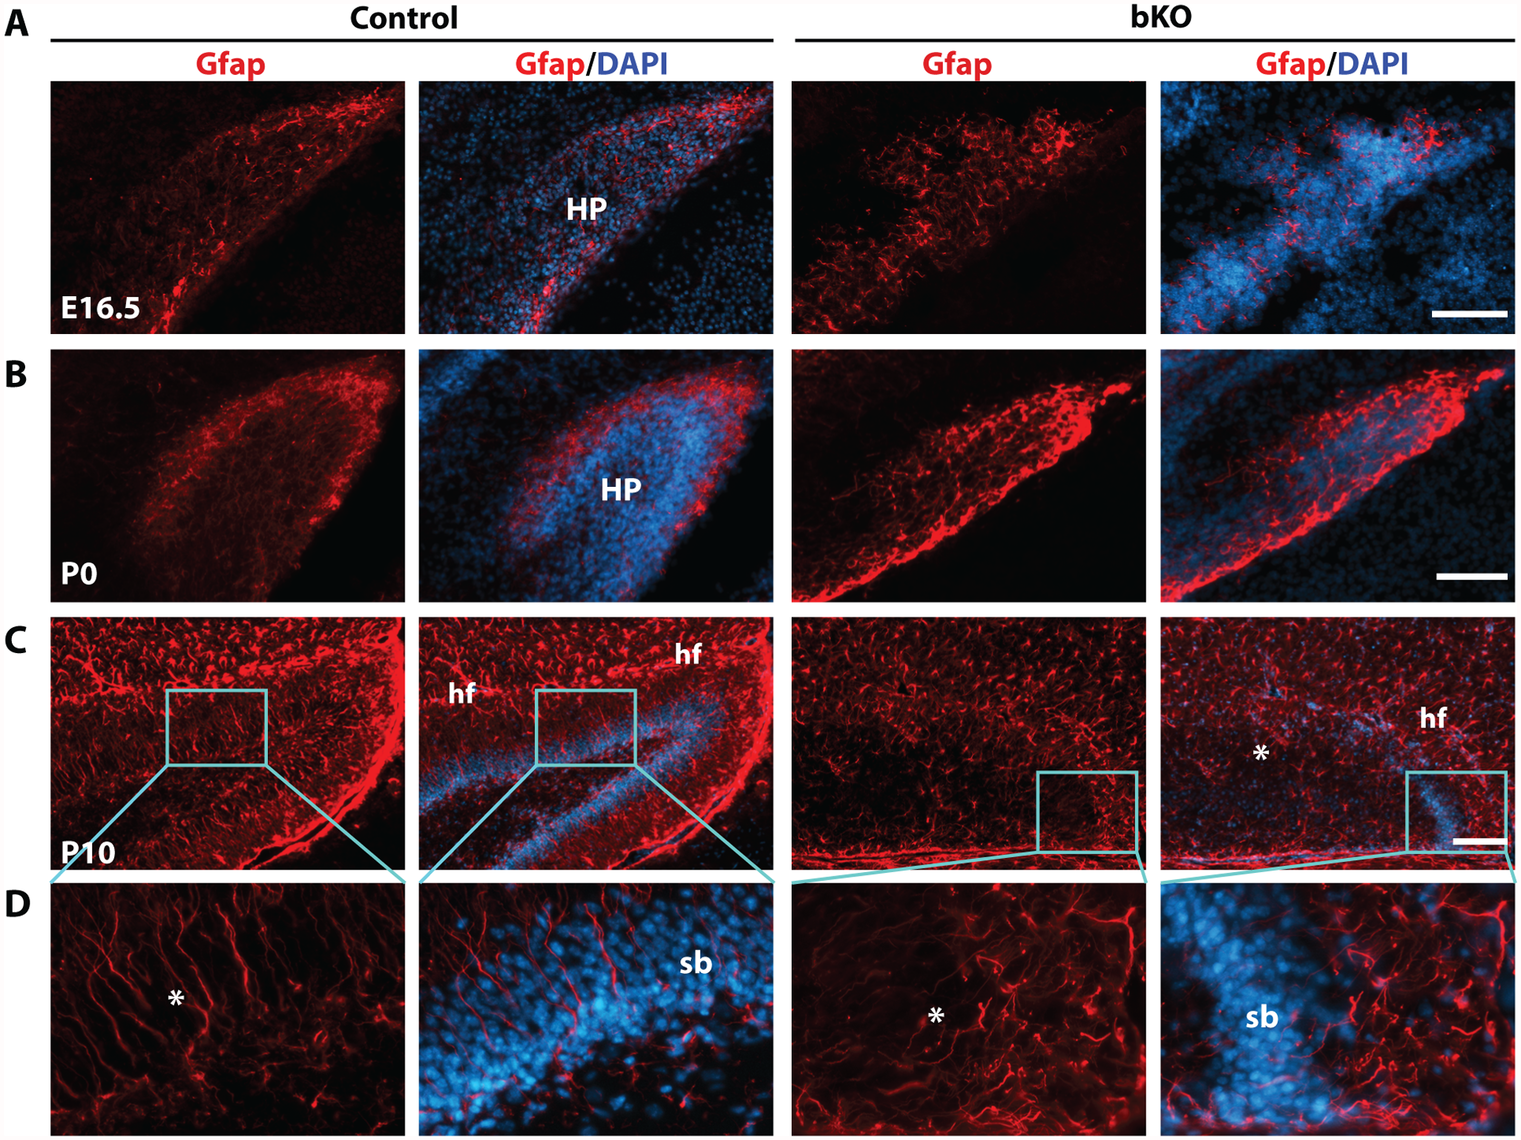 Deregulated Gfap expression in the mutant hippocampus.